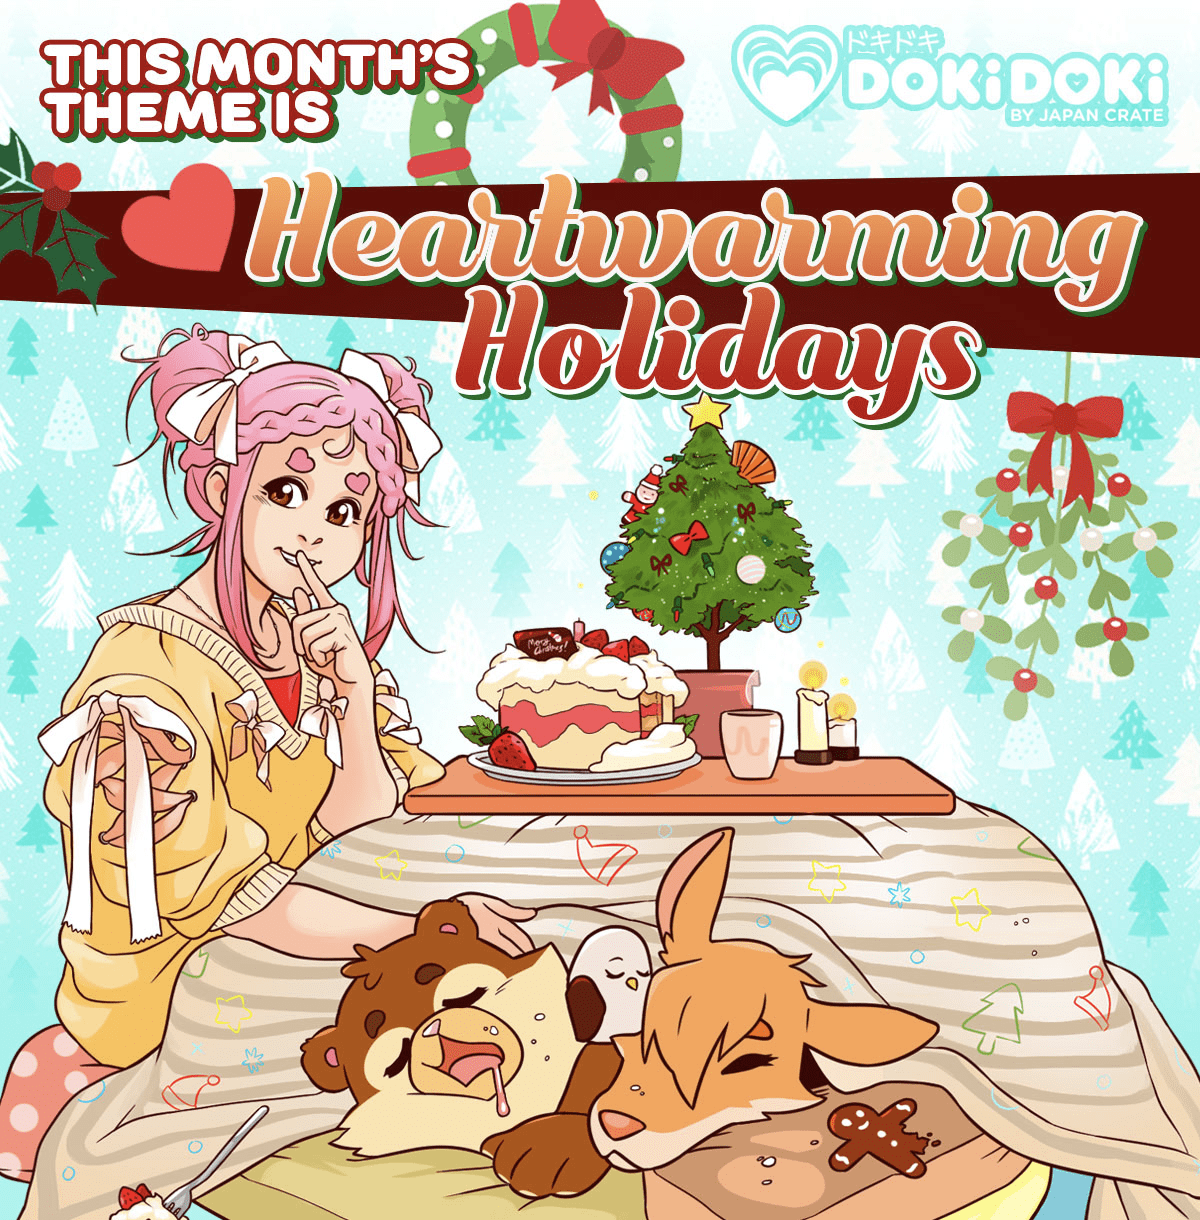 Doki Doki December 2018 Theme Spoilers + Coupon!